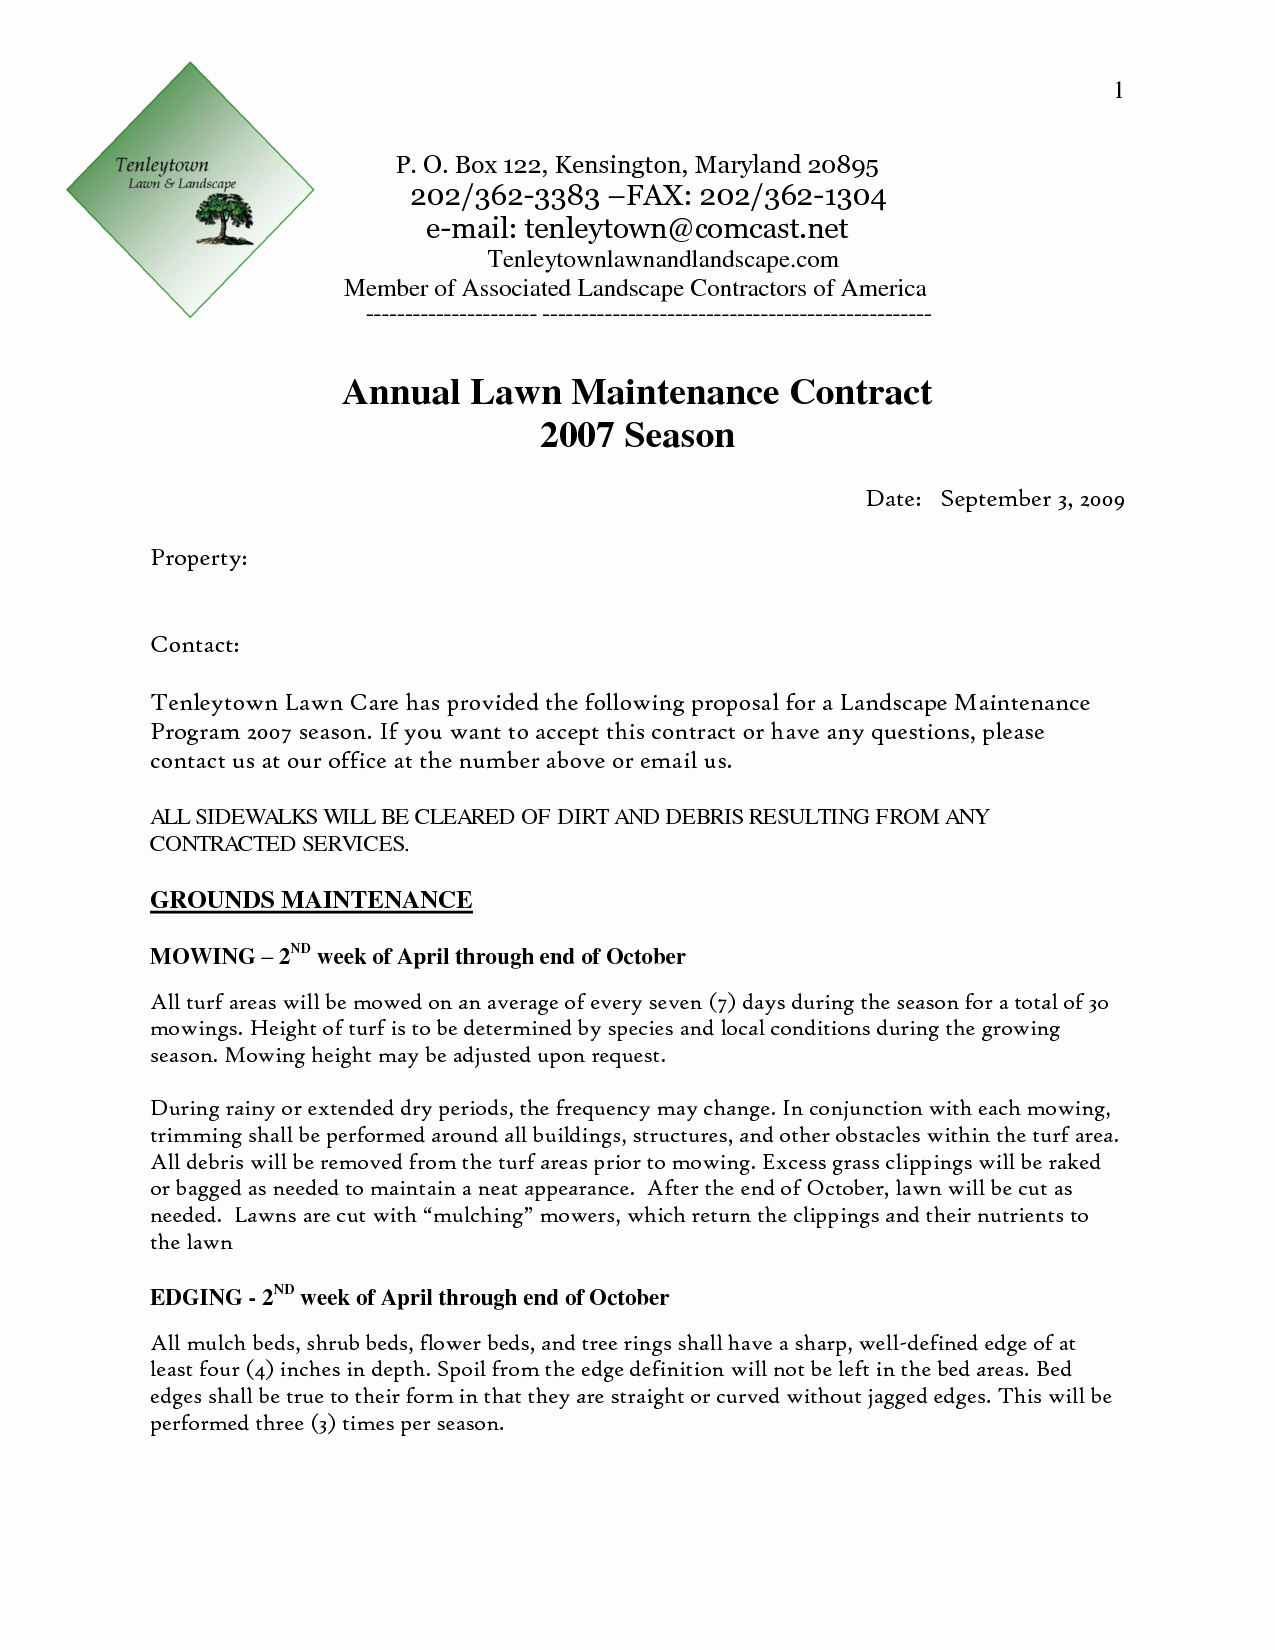 Lawn Care Proposal Template Inspirational Landscape Proposal Template Word